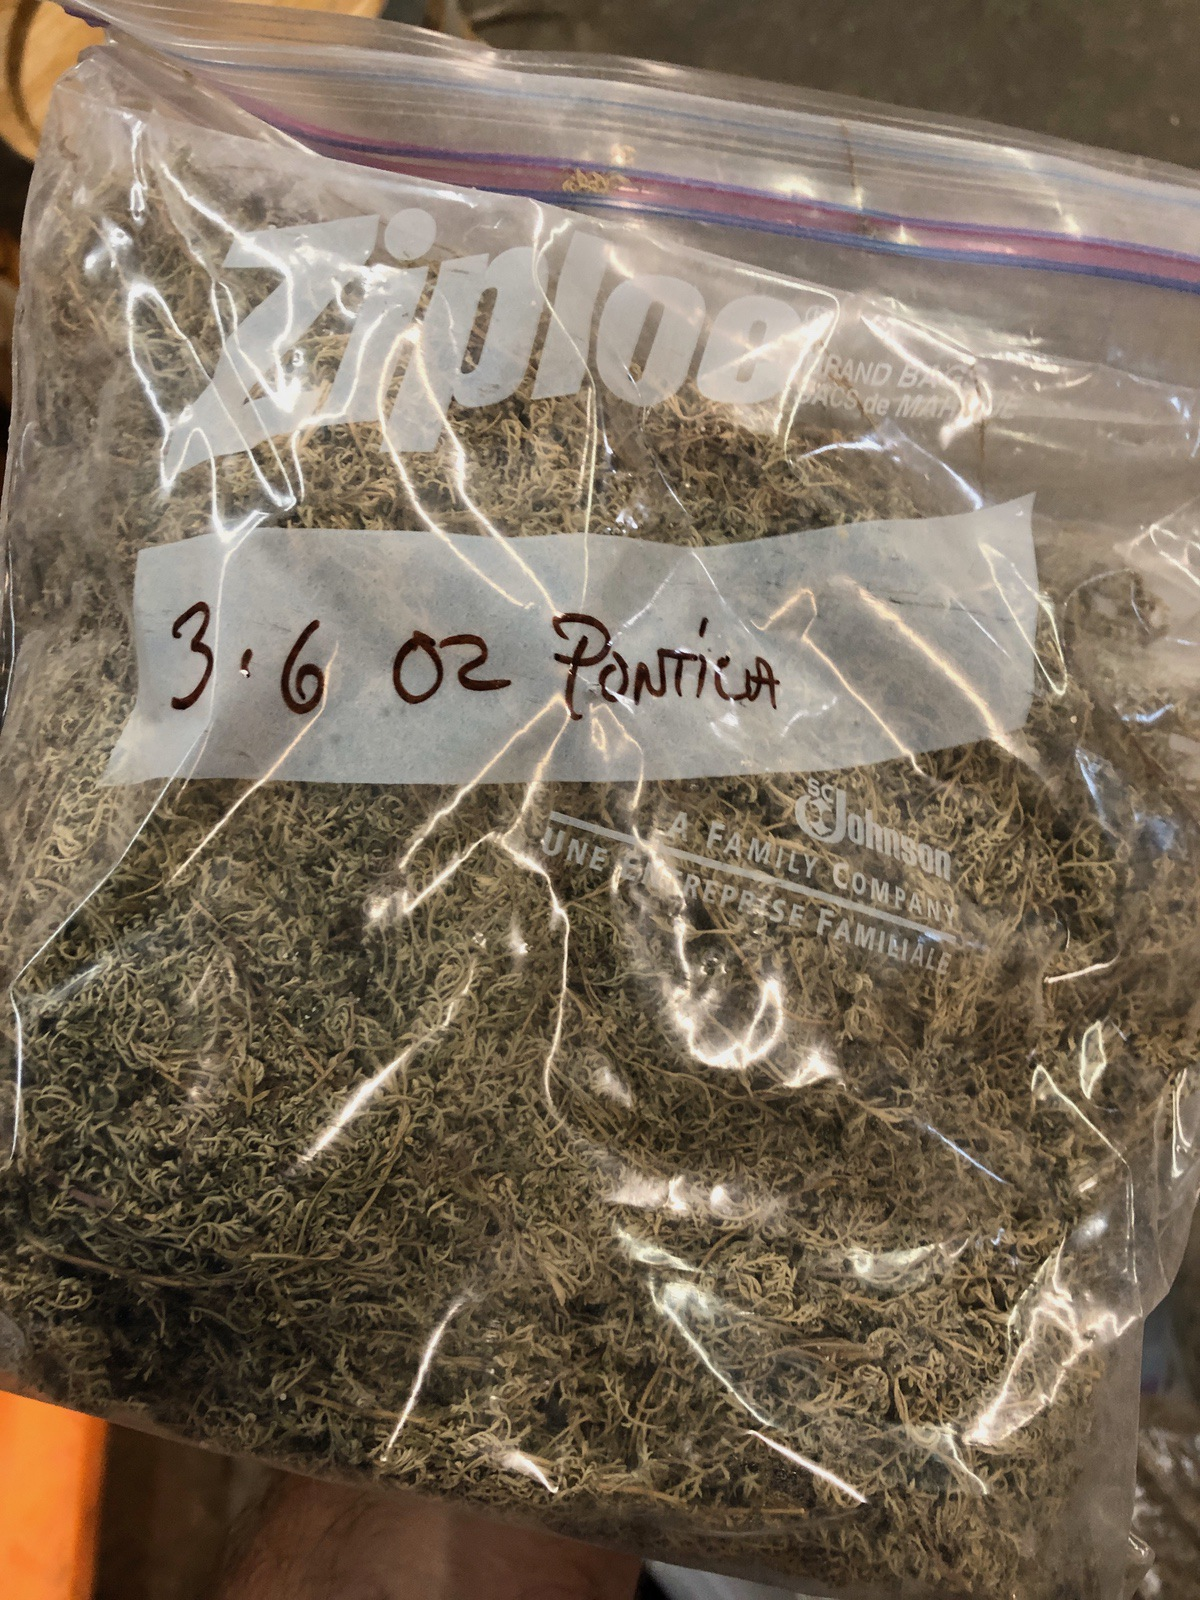 Lot of Herbs and Botanicals: Ponitica, Wormwood Herb C/S (Weight to be Provided | Rig Fee: $20 or HC - Image 4 of 14